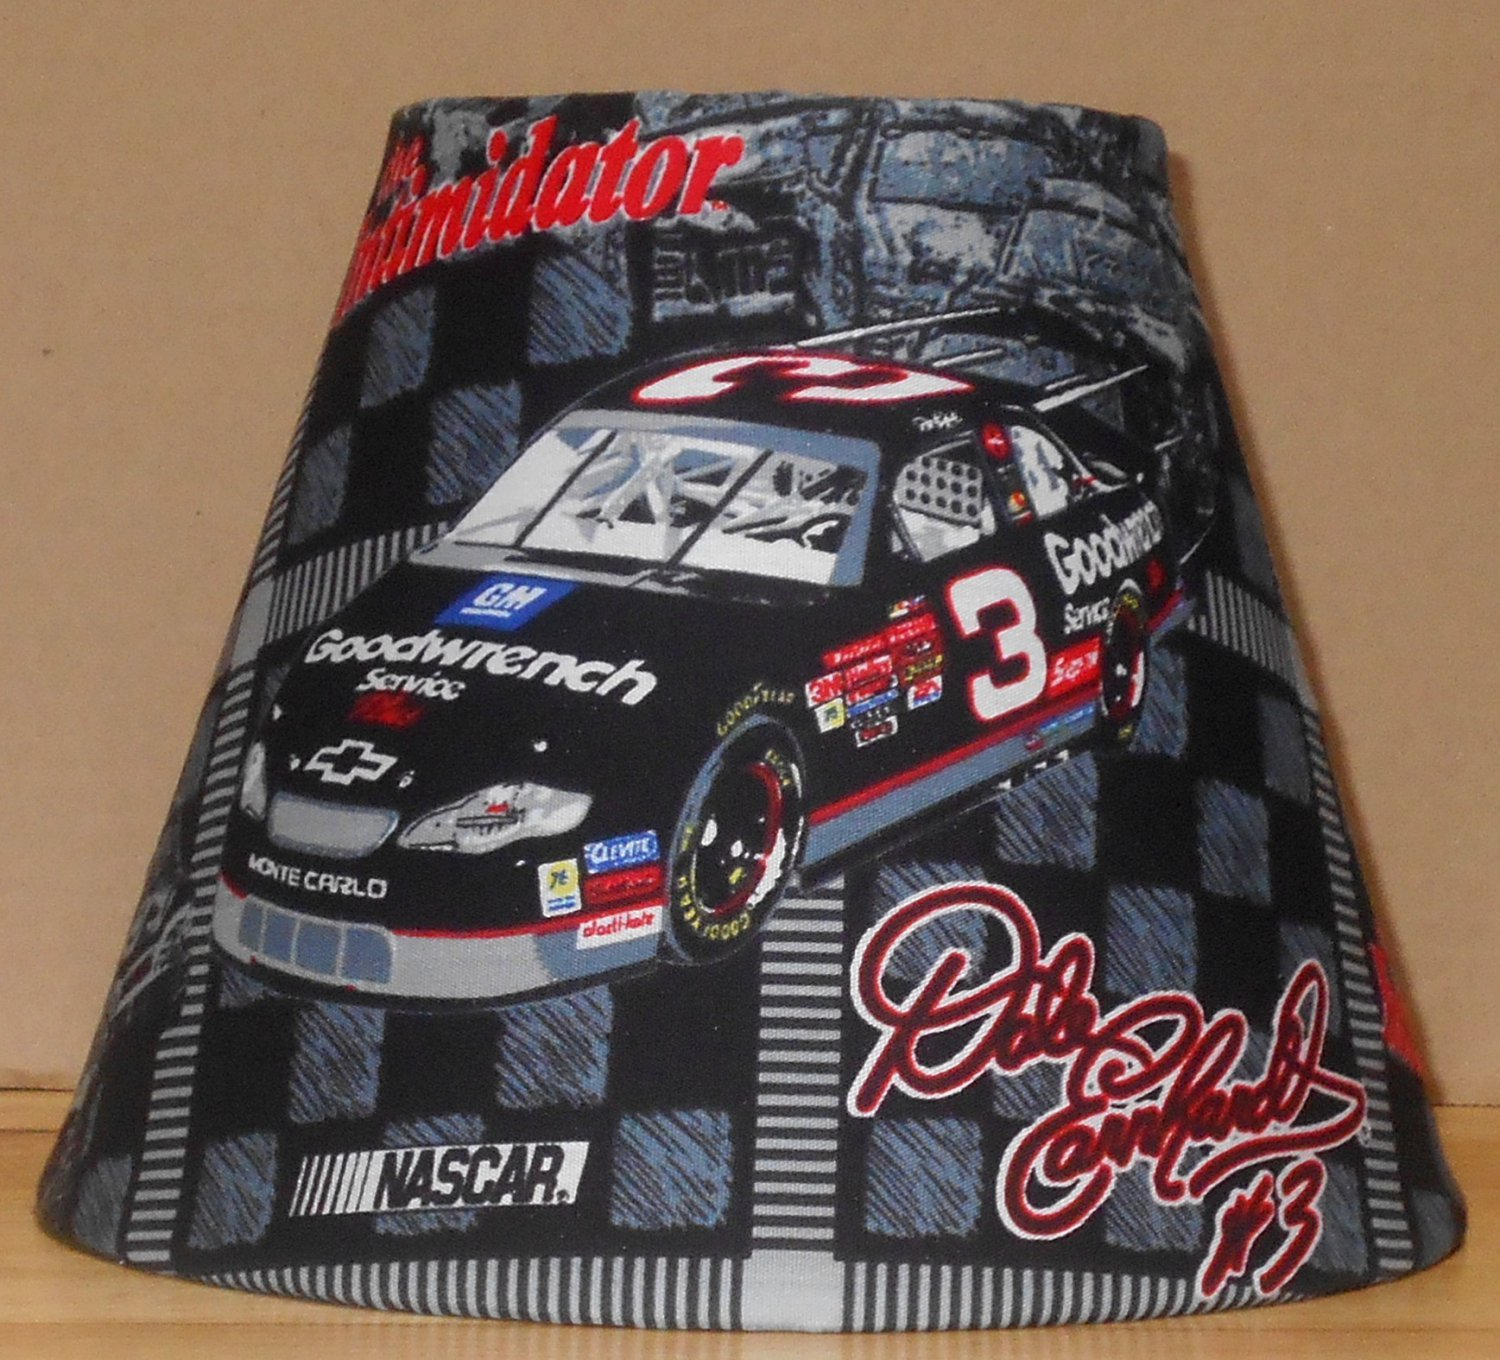 DALE EARNHARDT SR  LAMP AND SHADE  FABRIC LAMP SHADE lampshade NASCAR RACING 7.5x5x9.5